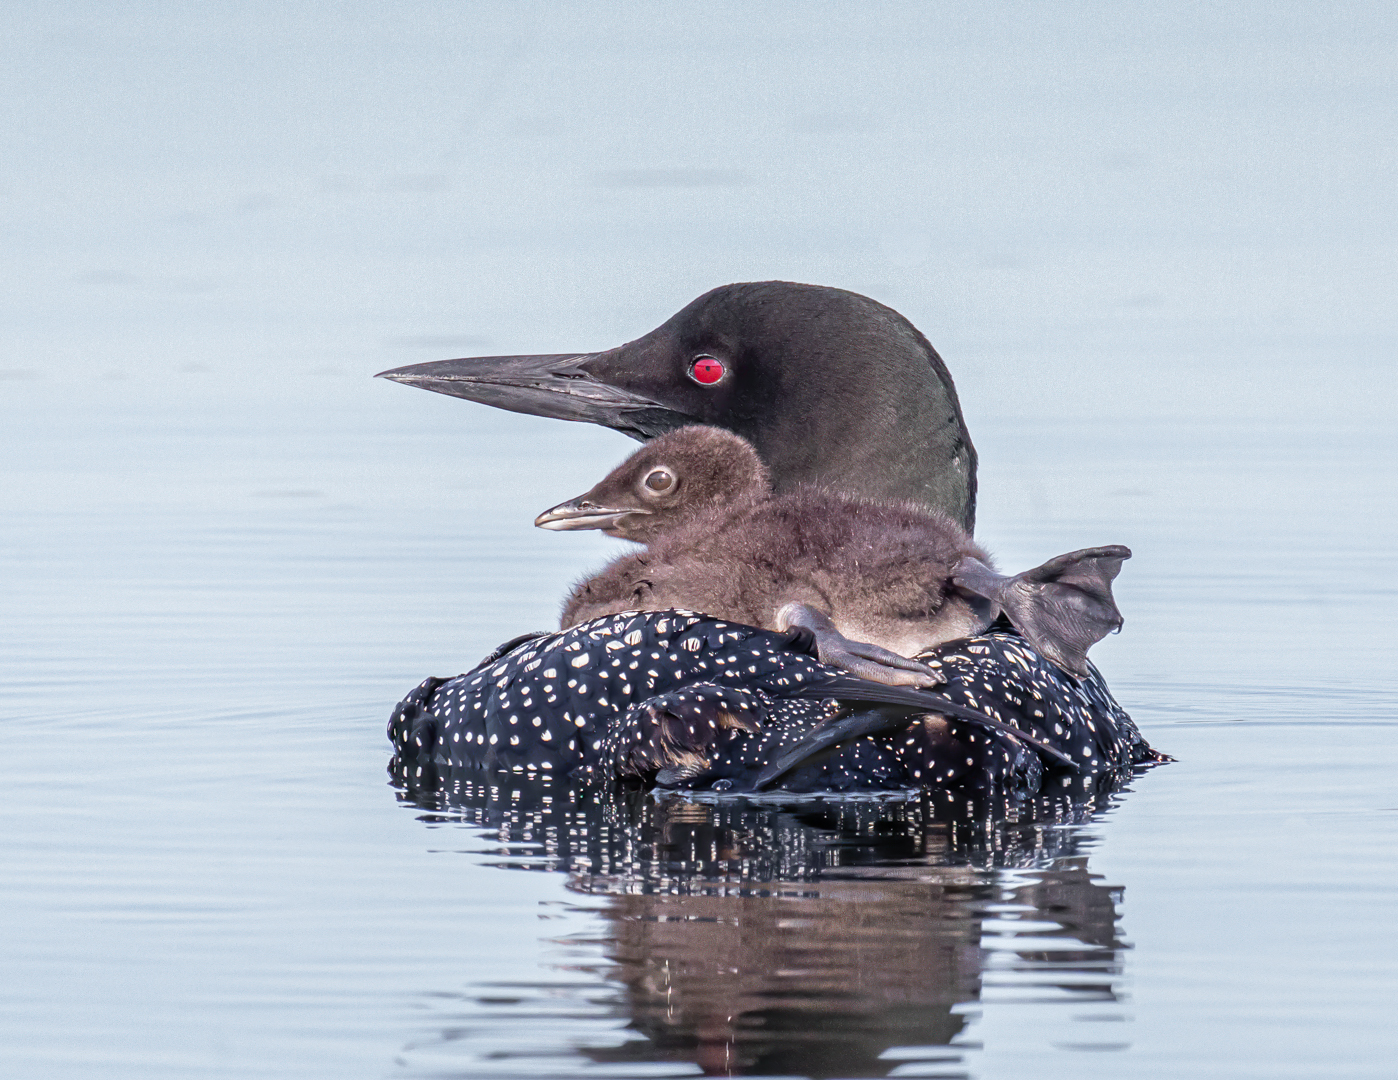 Common Loon with Chick on Board